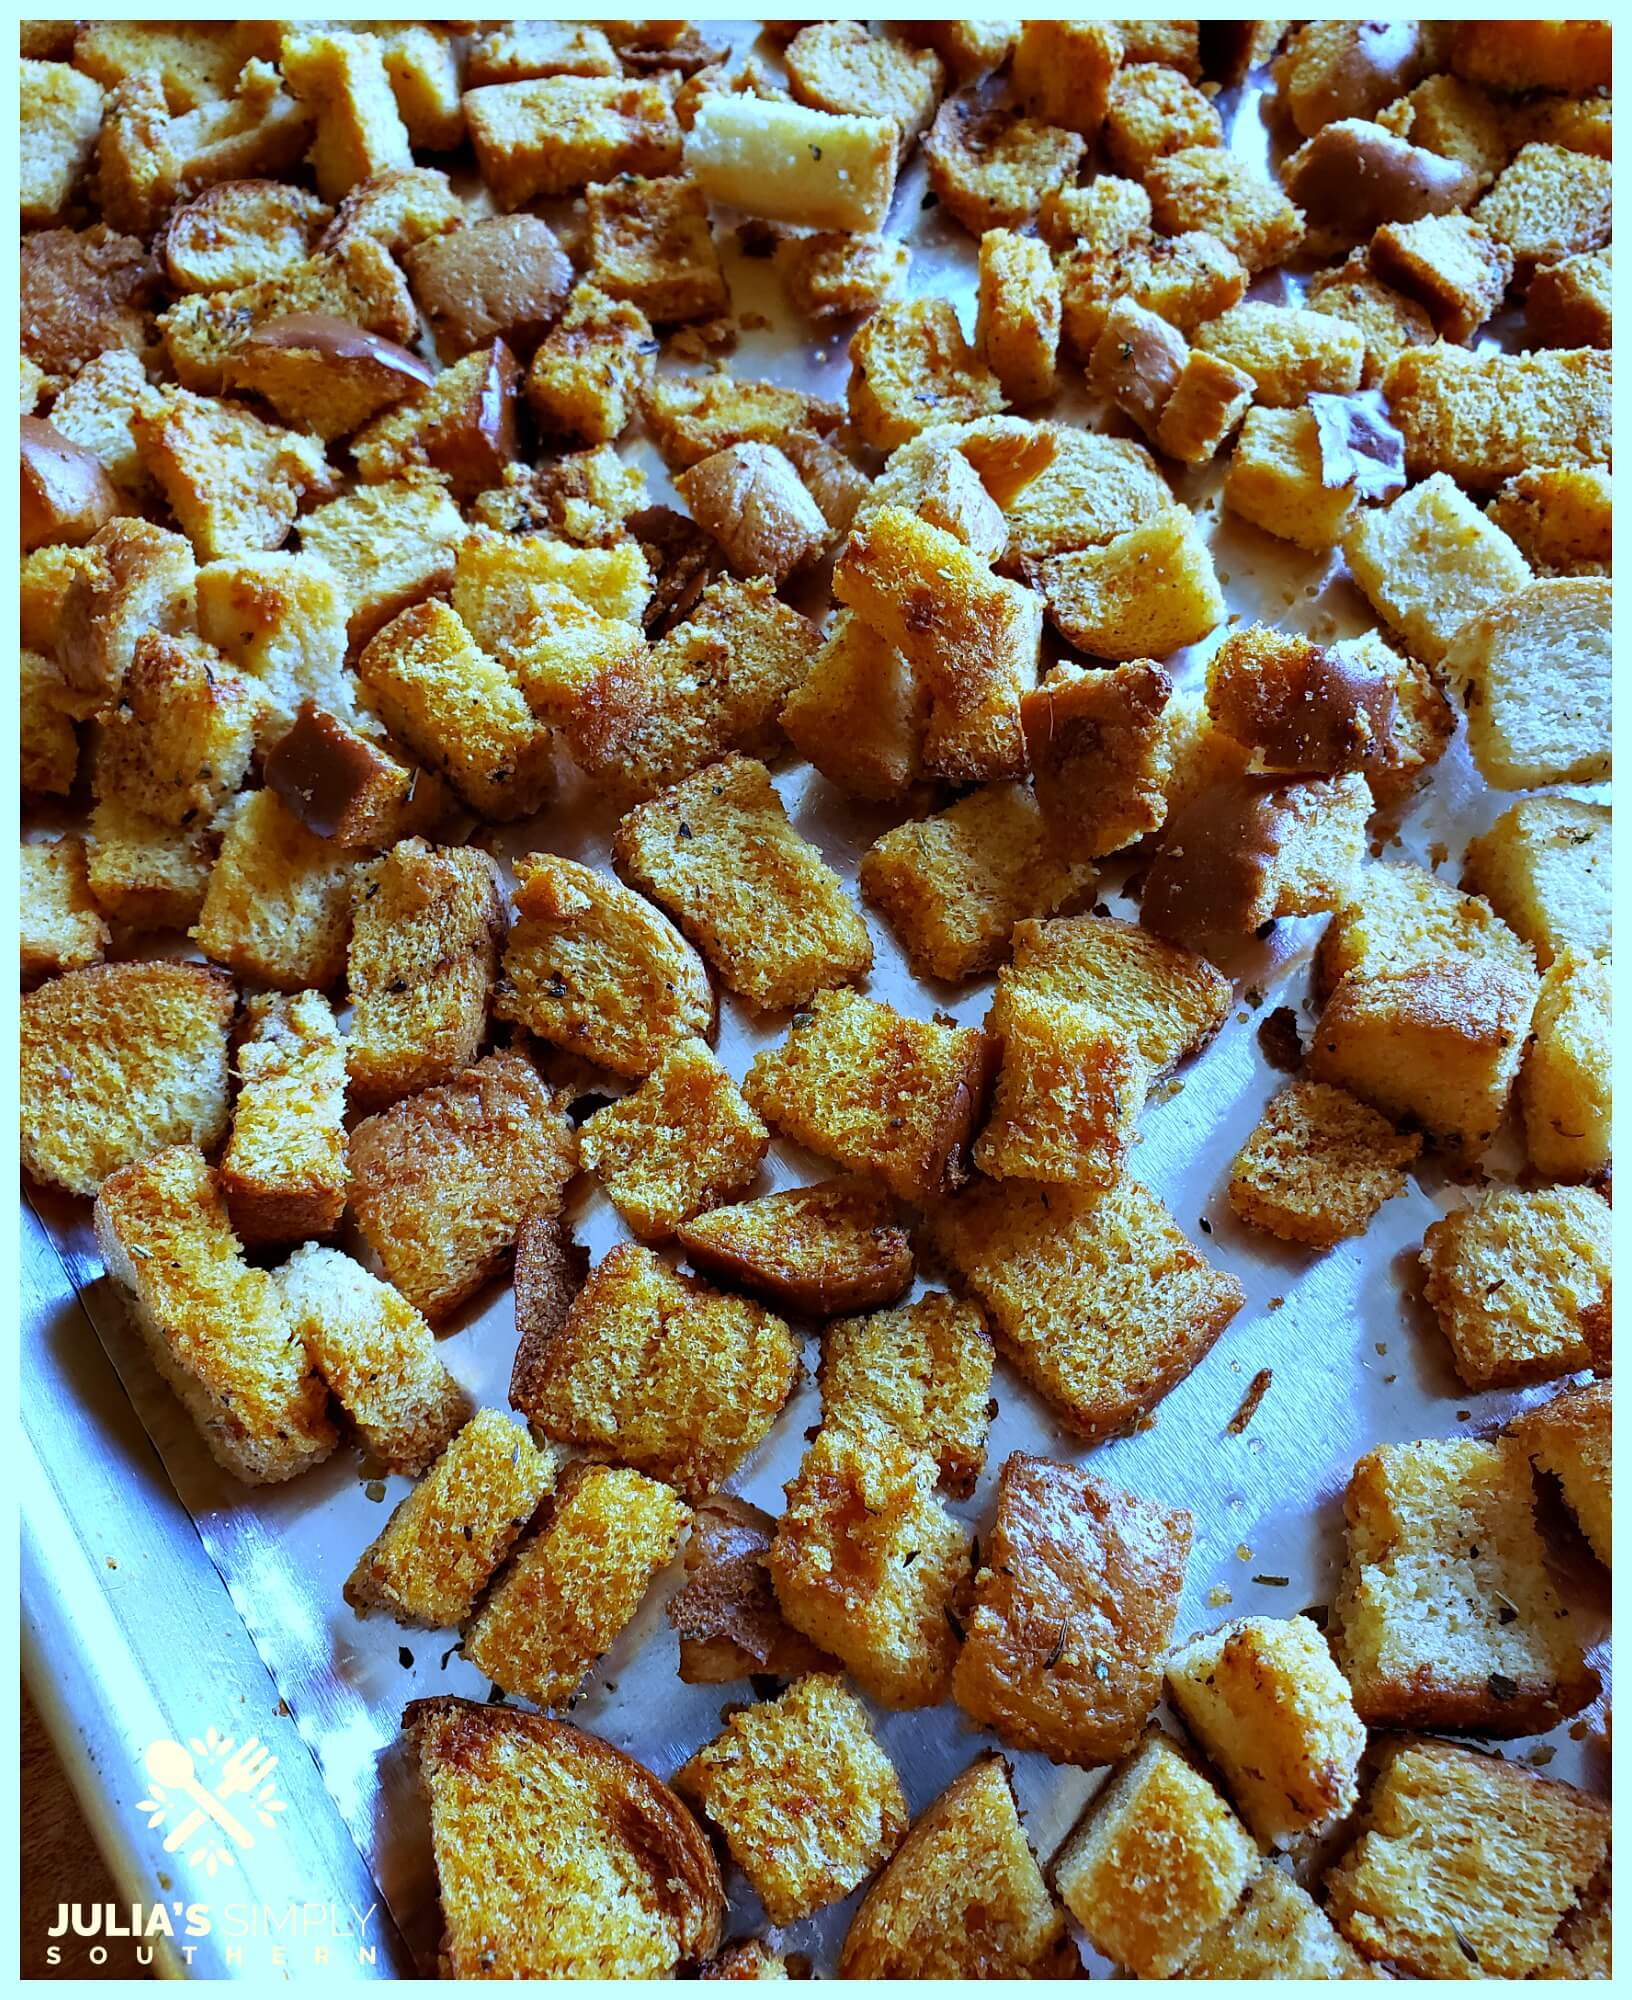 Baking sheet with homemade croutons for salads